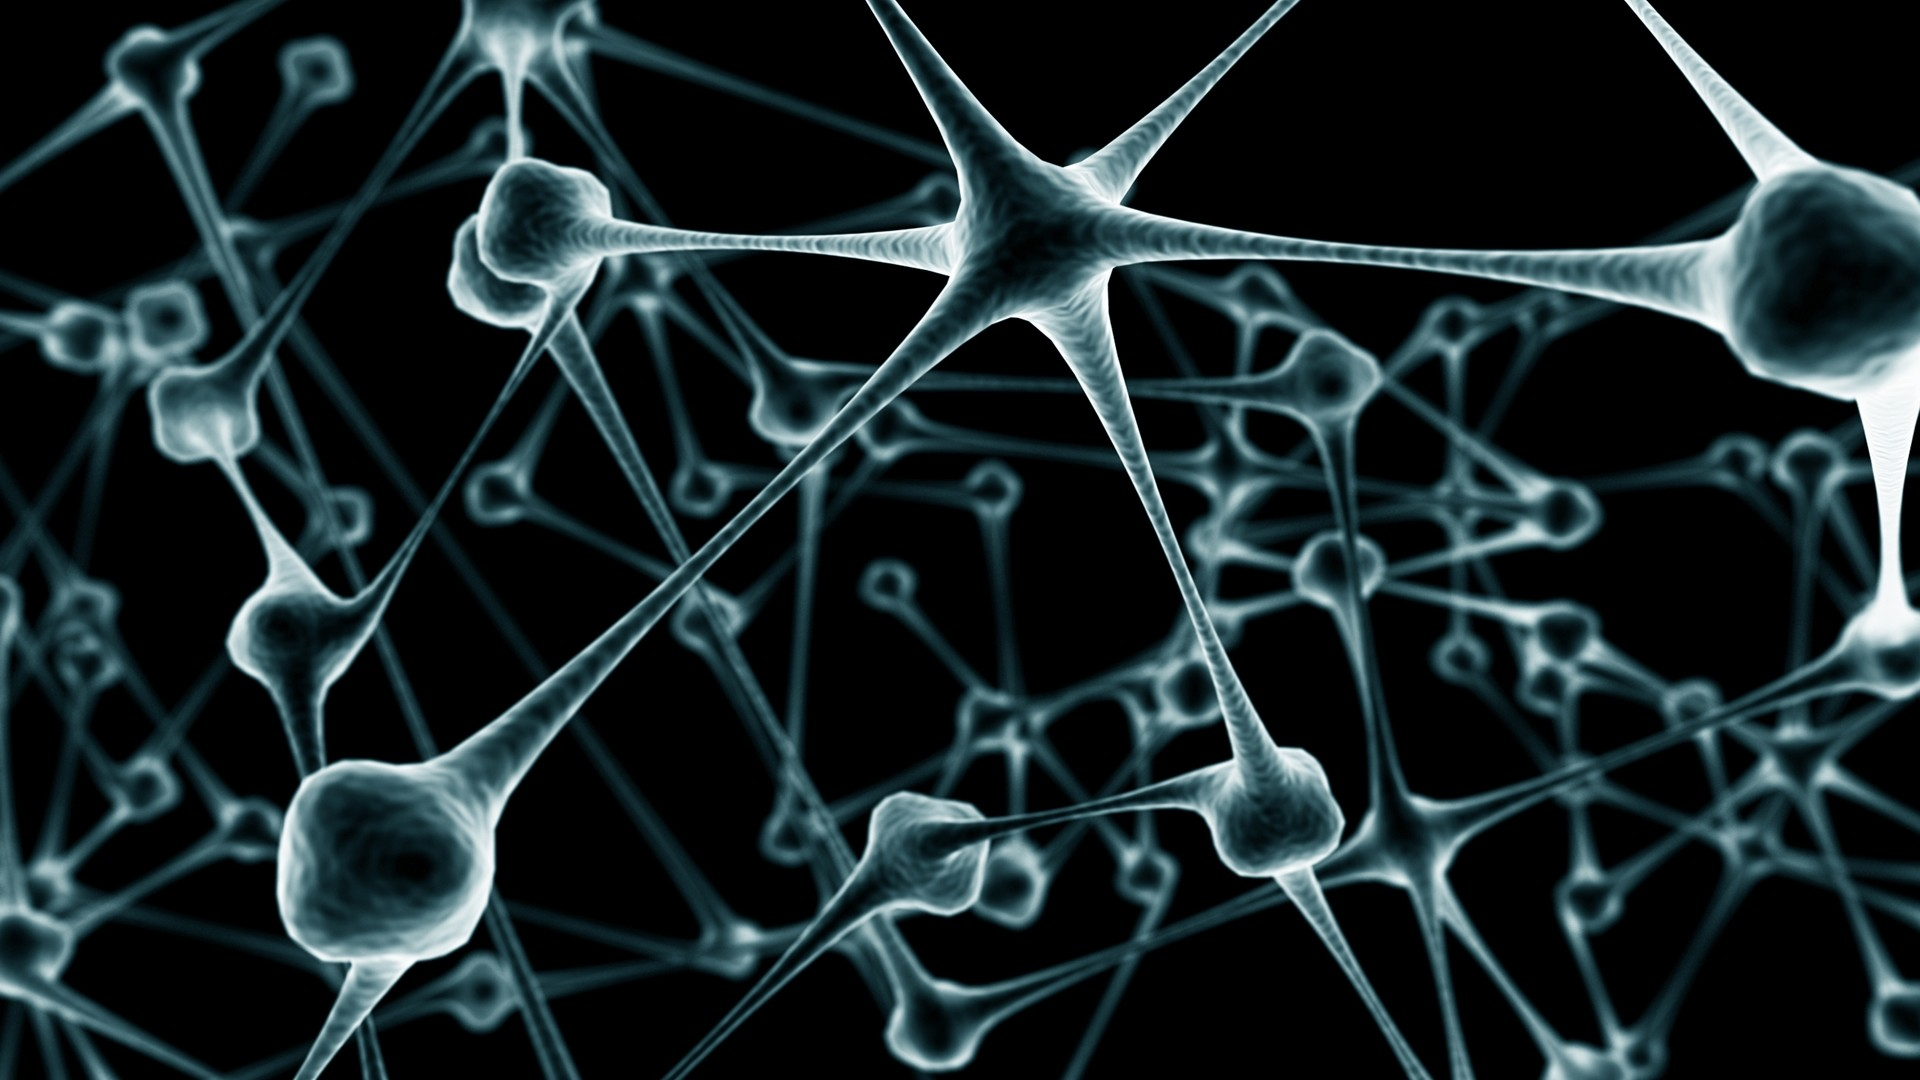 biology nerves neurons synapse best widescreen background awesome HD 1920x1080